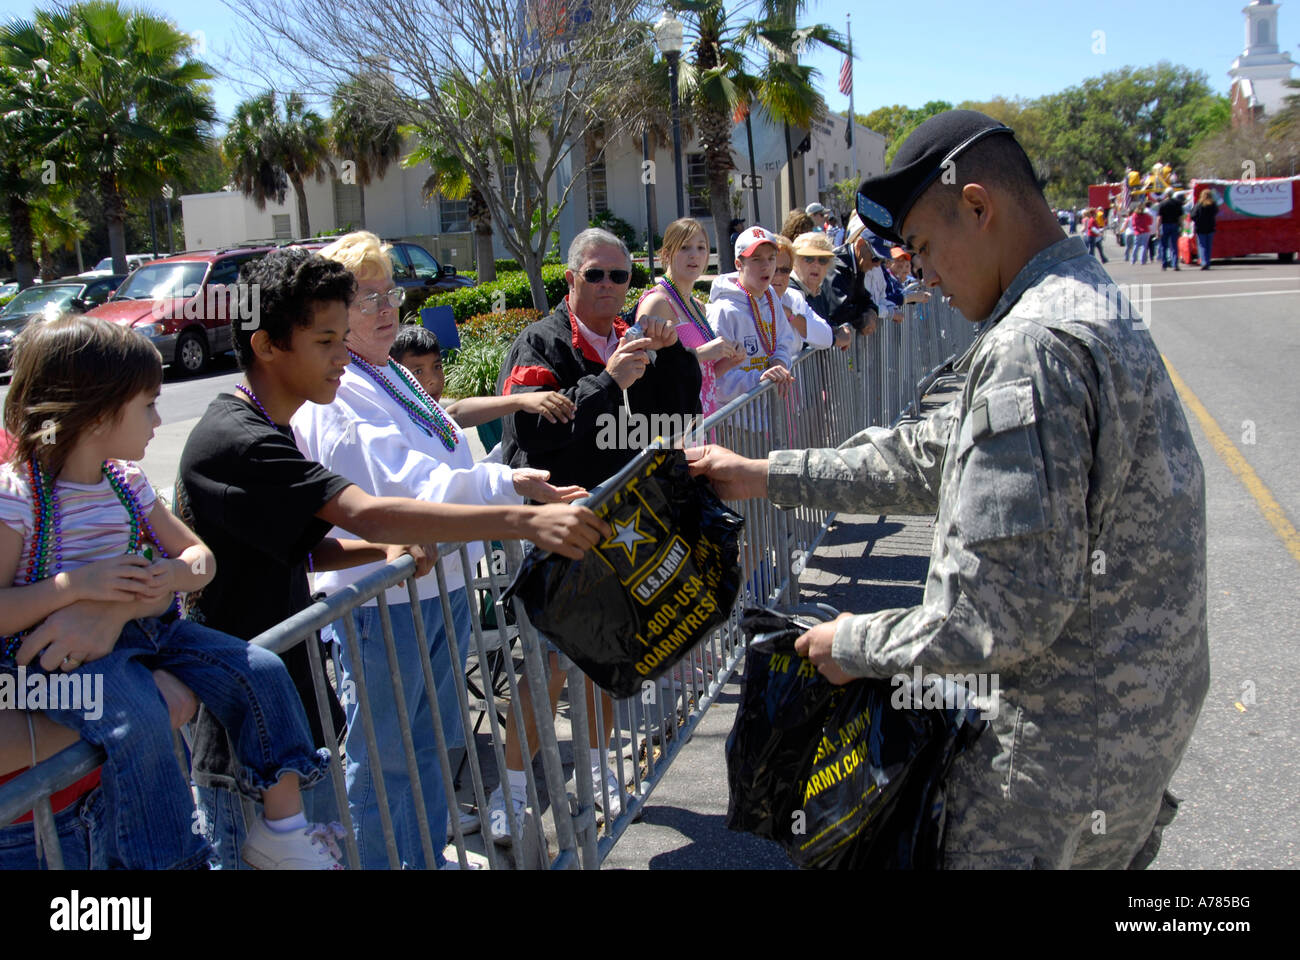 U S Army Recruiters Participate in Strawberry Festival Parade Plant City Florida FL FLA USA US - Stock Image